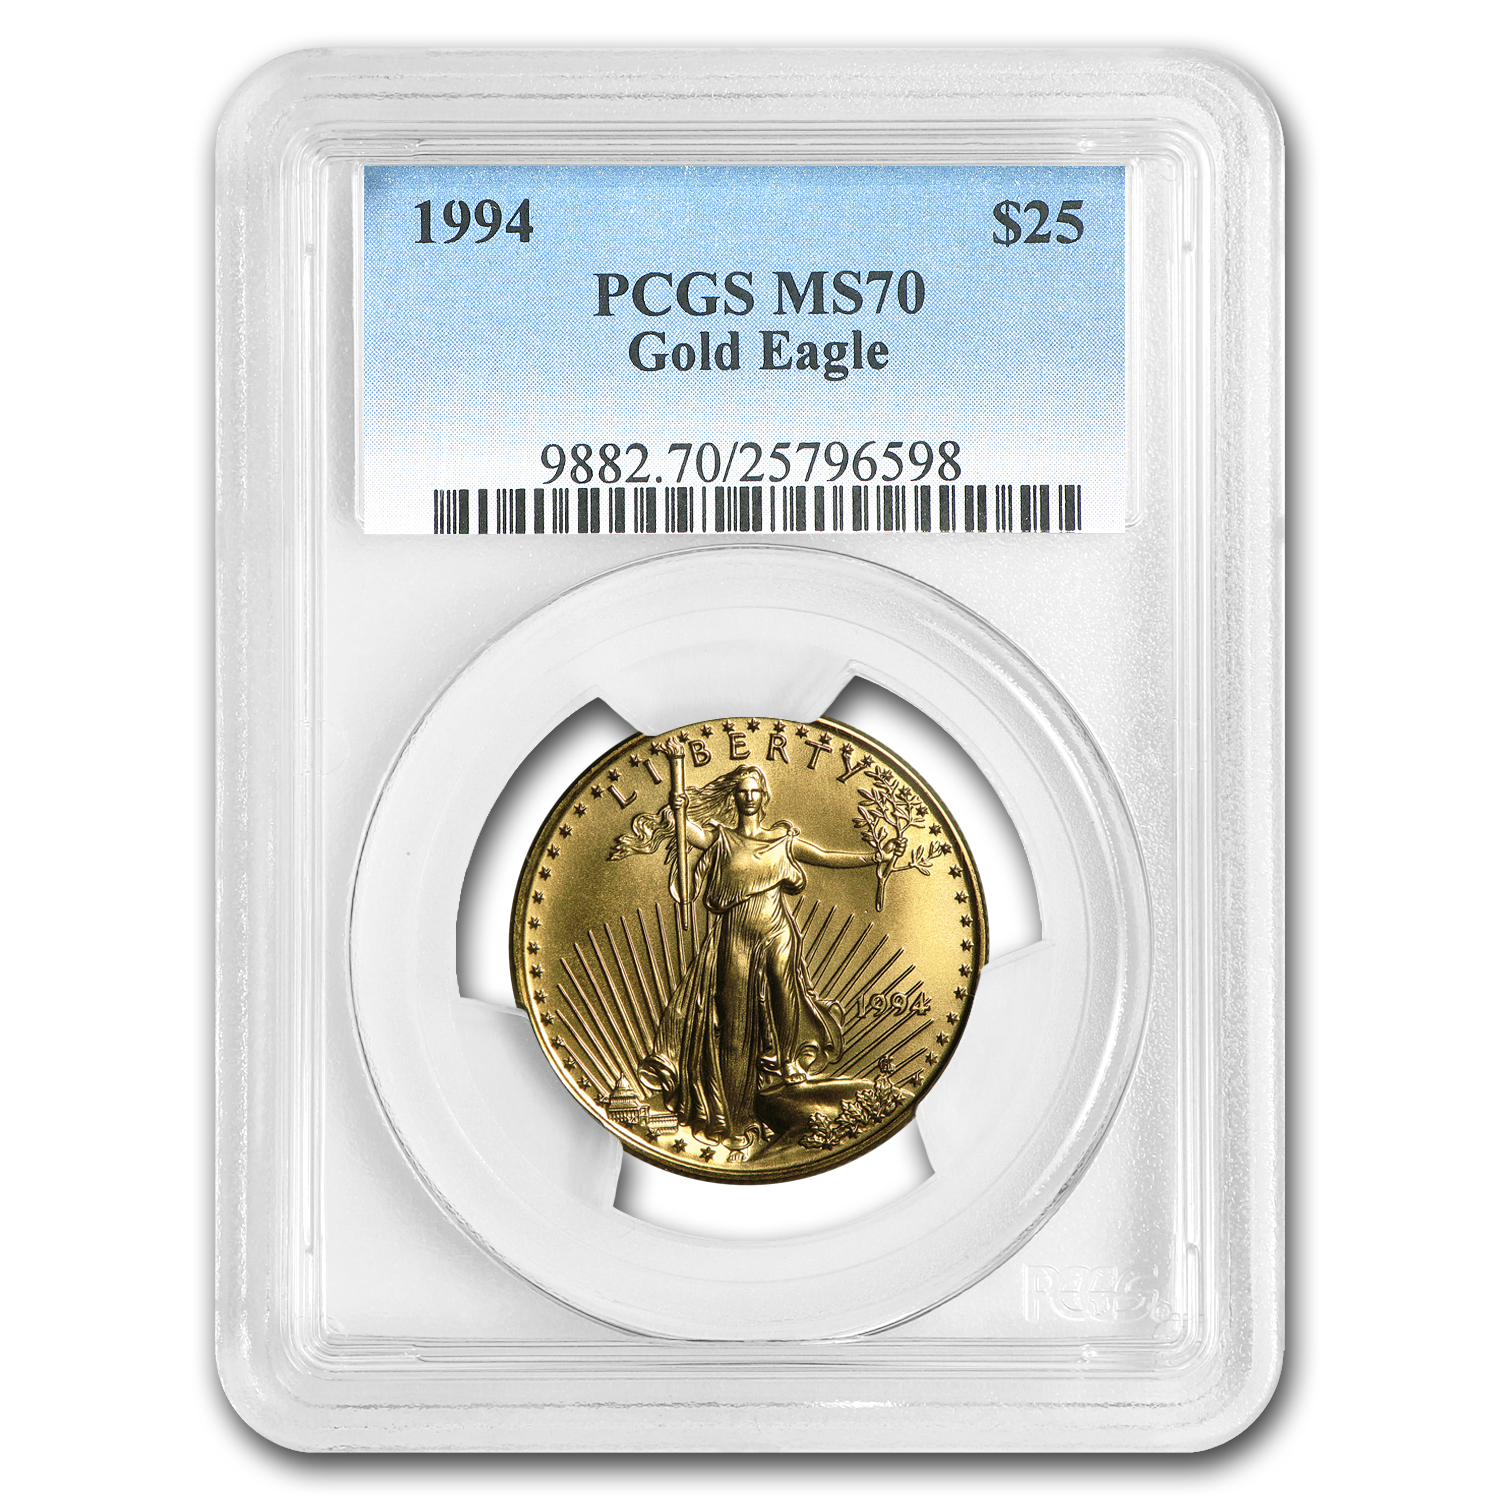 1994 1/2 oz Gold American Eagle MS-70 PCGS (Registry Set)